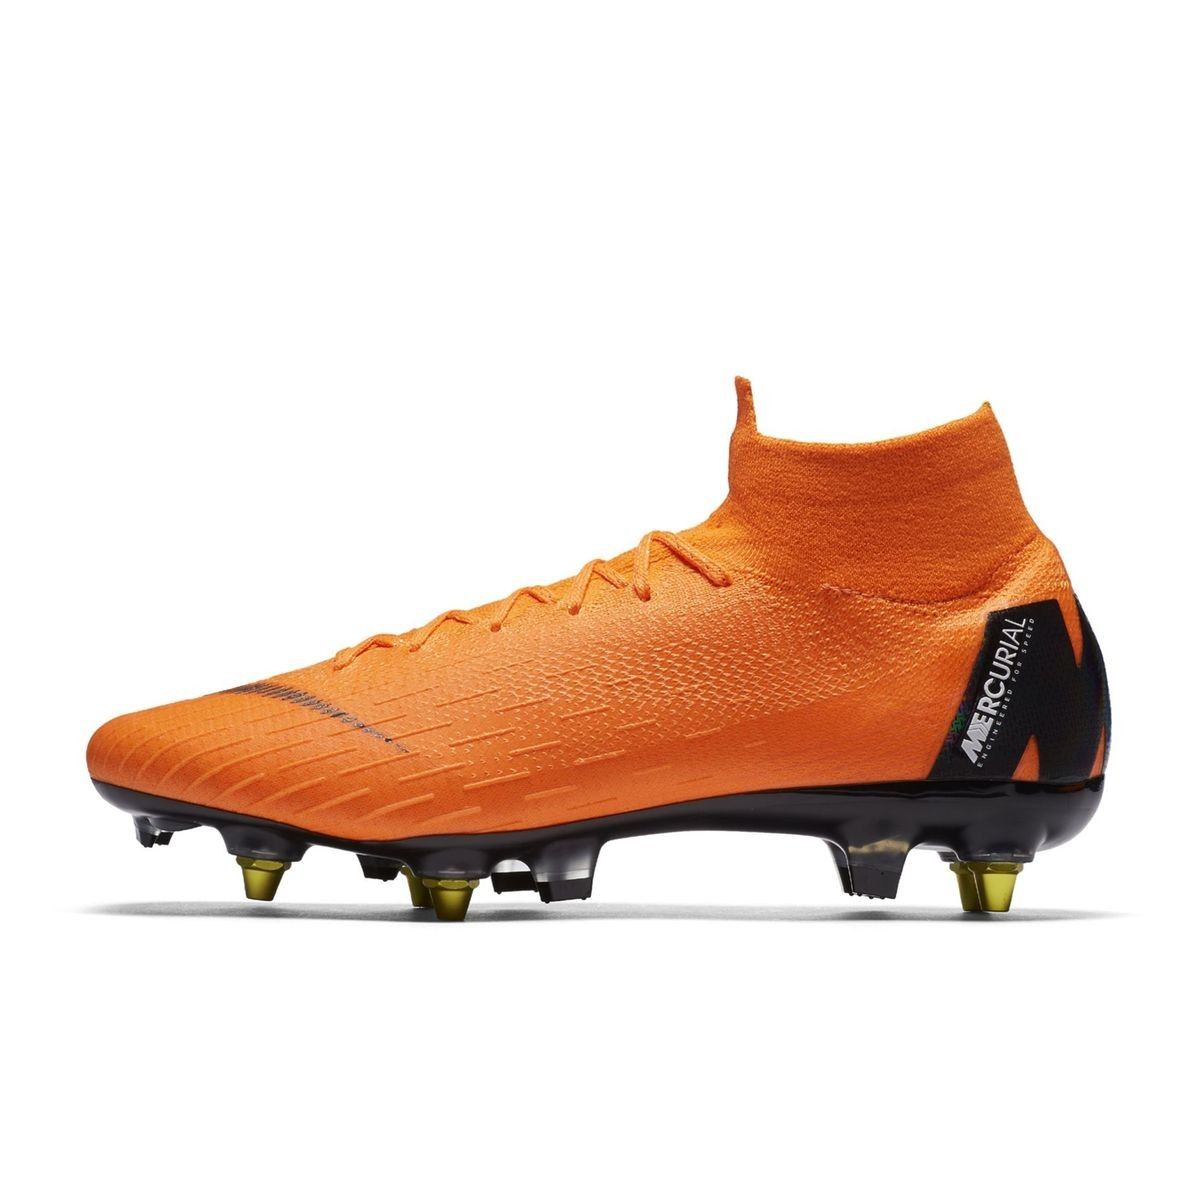 hot sales b091b 841da Chaussures Football Chaussure De Football Nike Mercurial Superfly 360 Vi  Elite Sg-pro Anti-